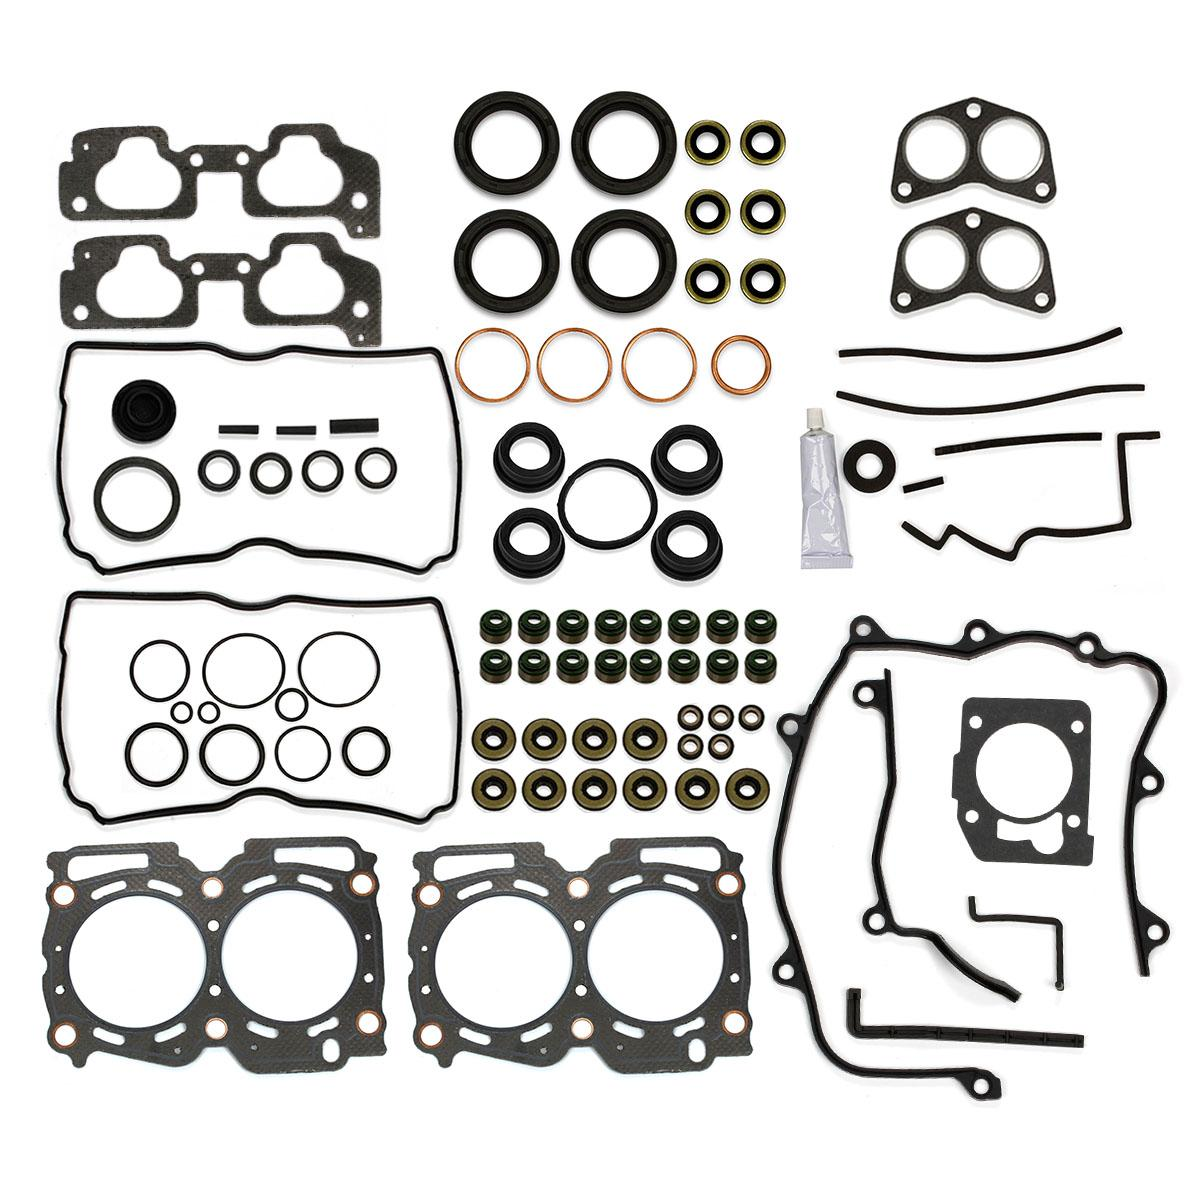 Showthread as well Subaru Baja Wiring Diagram besides 2001 Chevy S10 Tool Box likewise 2011 Ford F150 Forum Leveling Kits further 1998 Land Rover Discovery Fuse Box. on lift kit subaru legacy